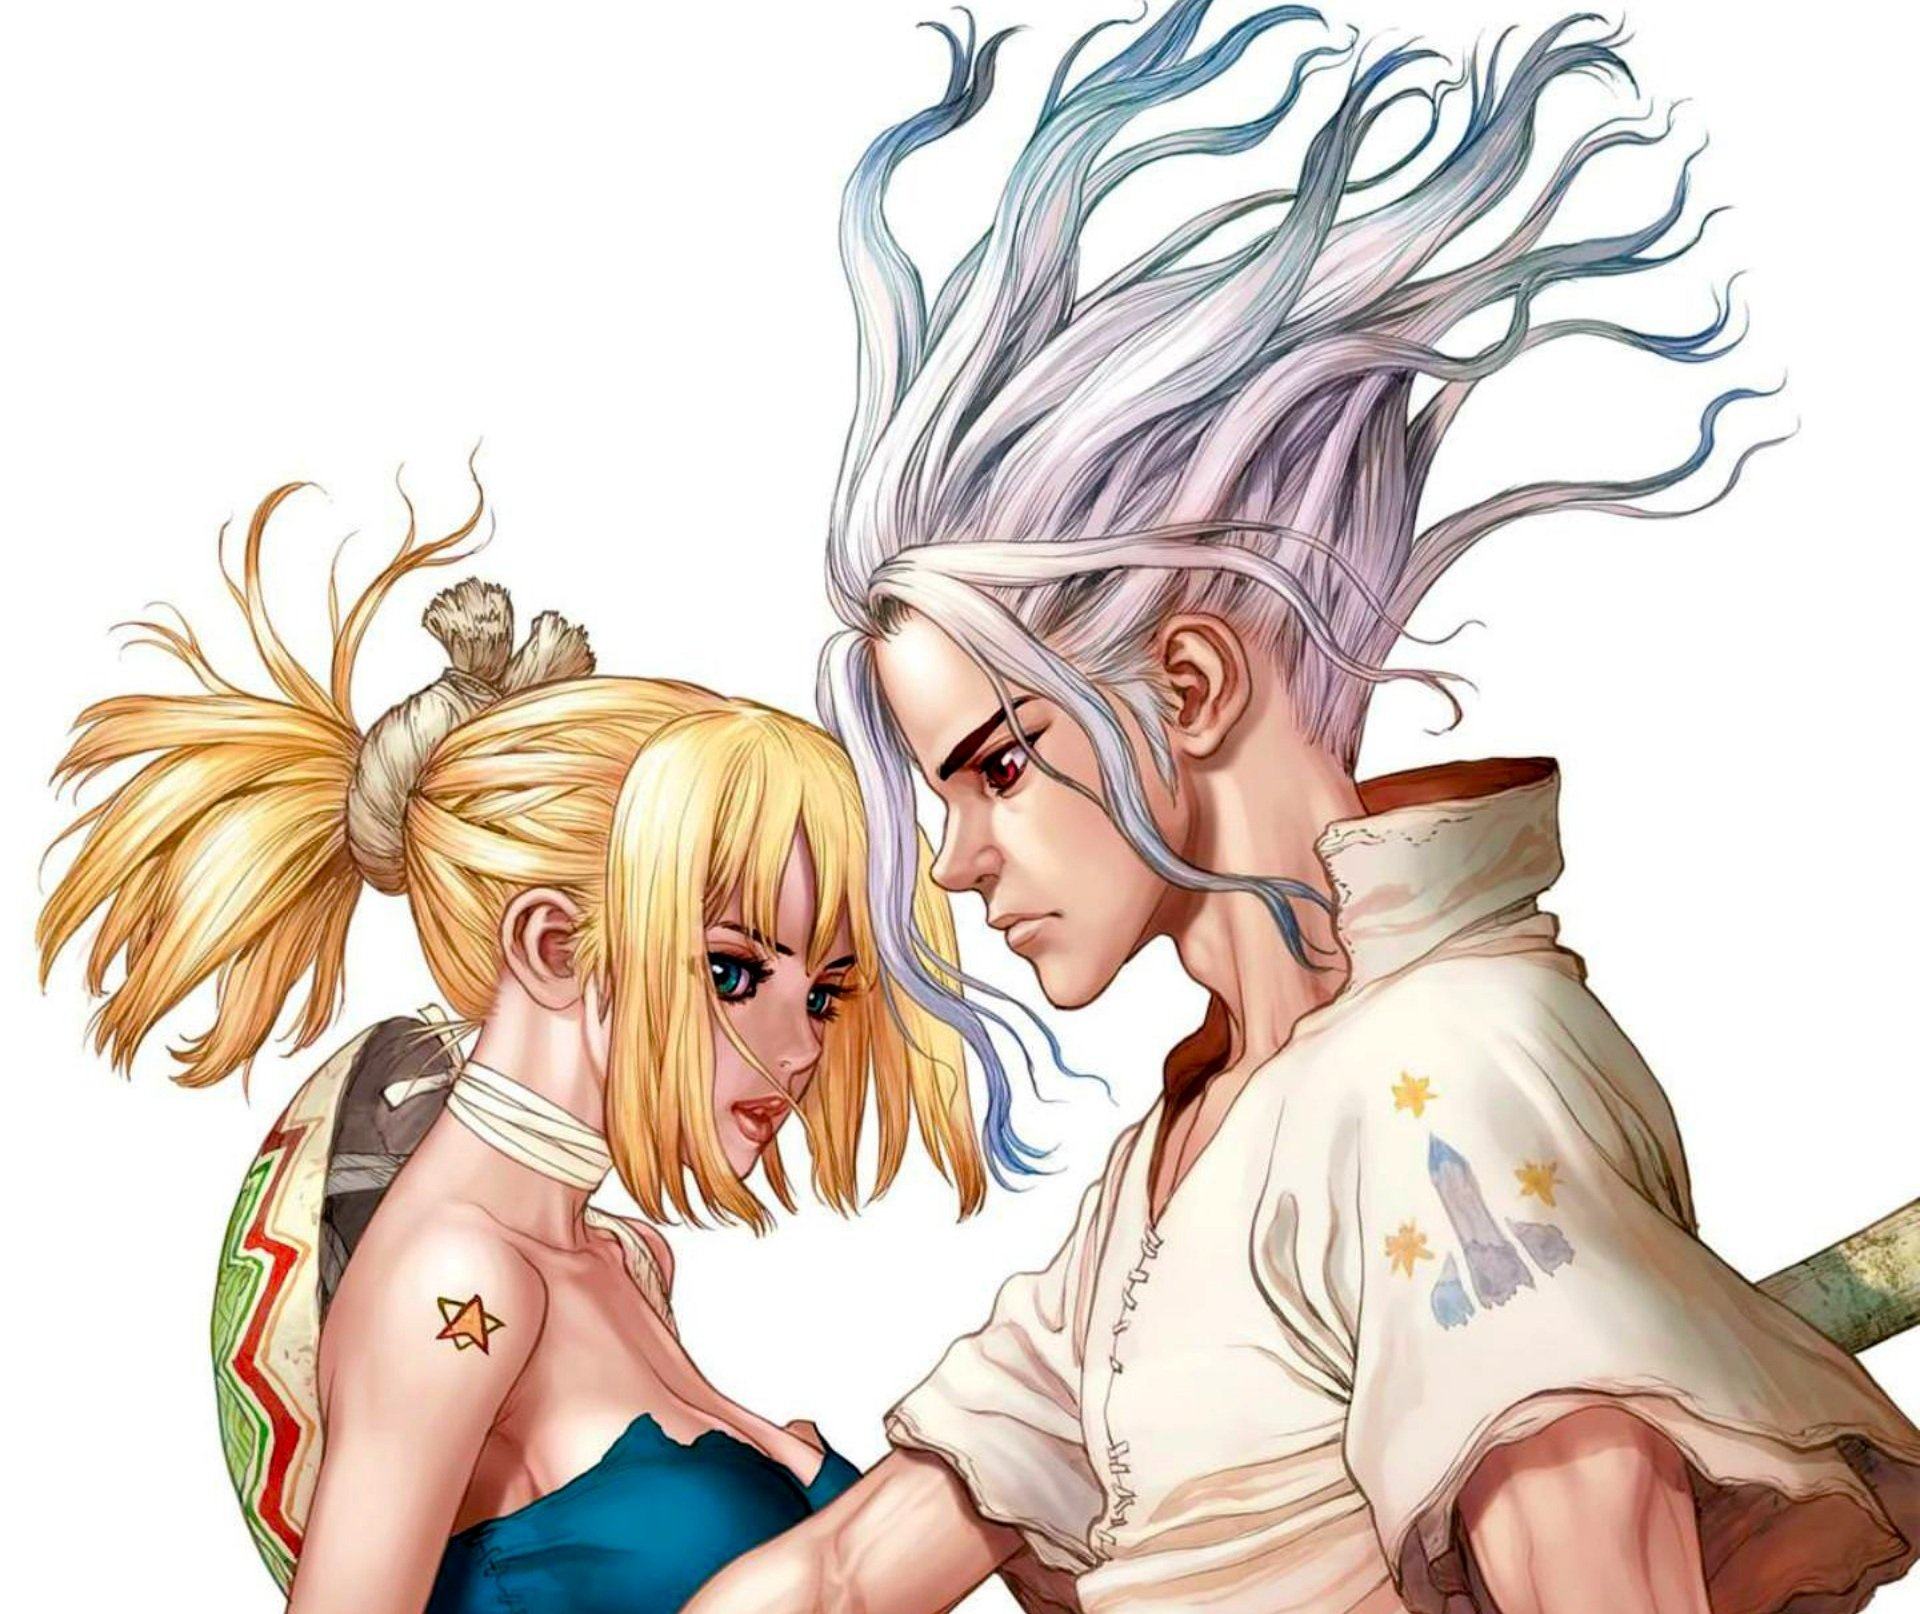 60 Dr Stone Hd Wallpapers Background Images Wallpaper Abyss Page 2